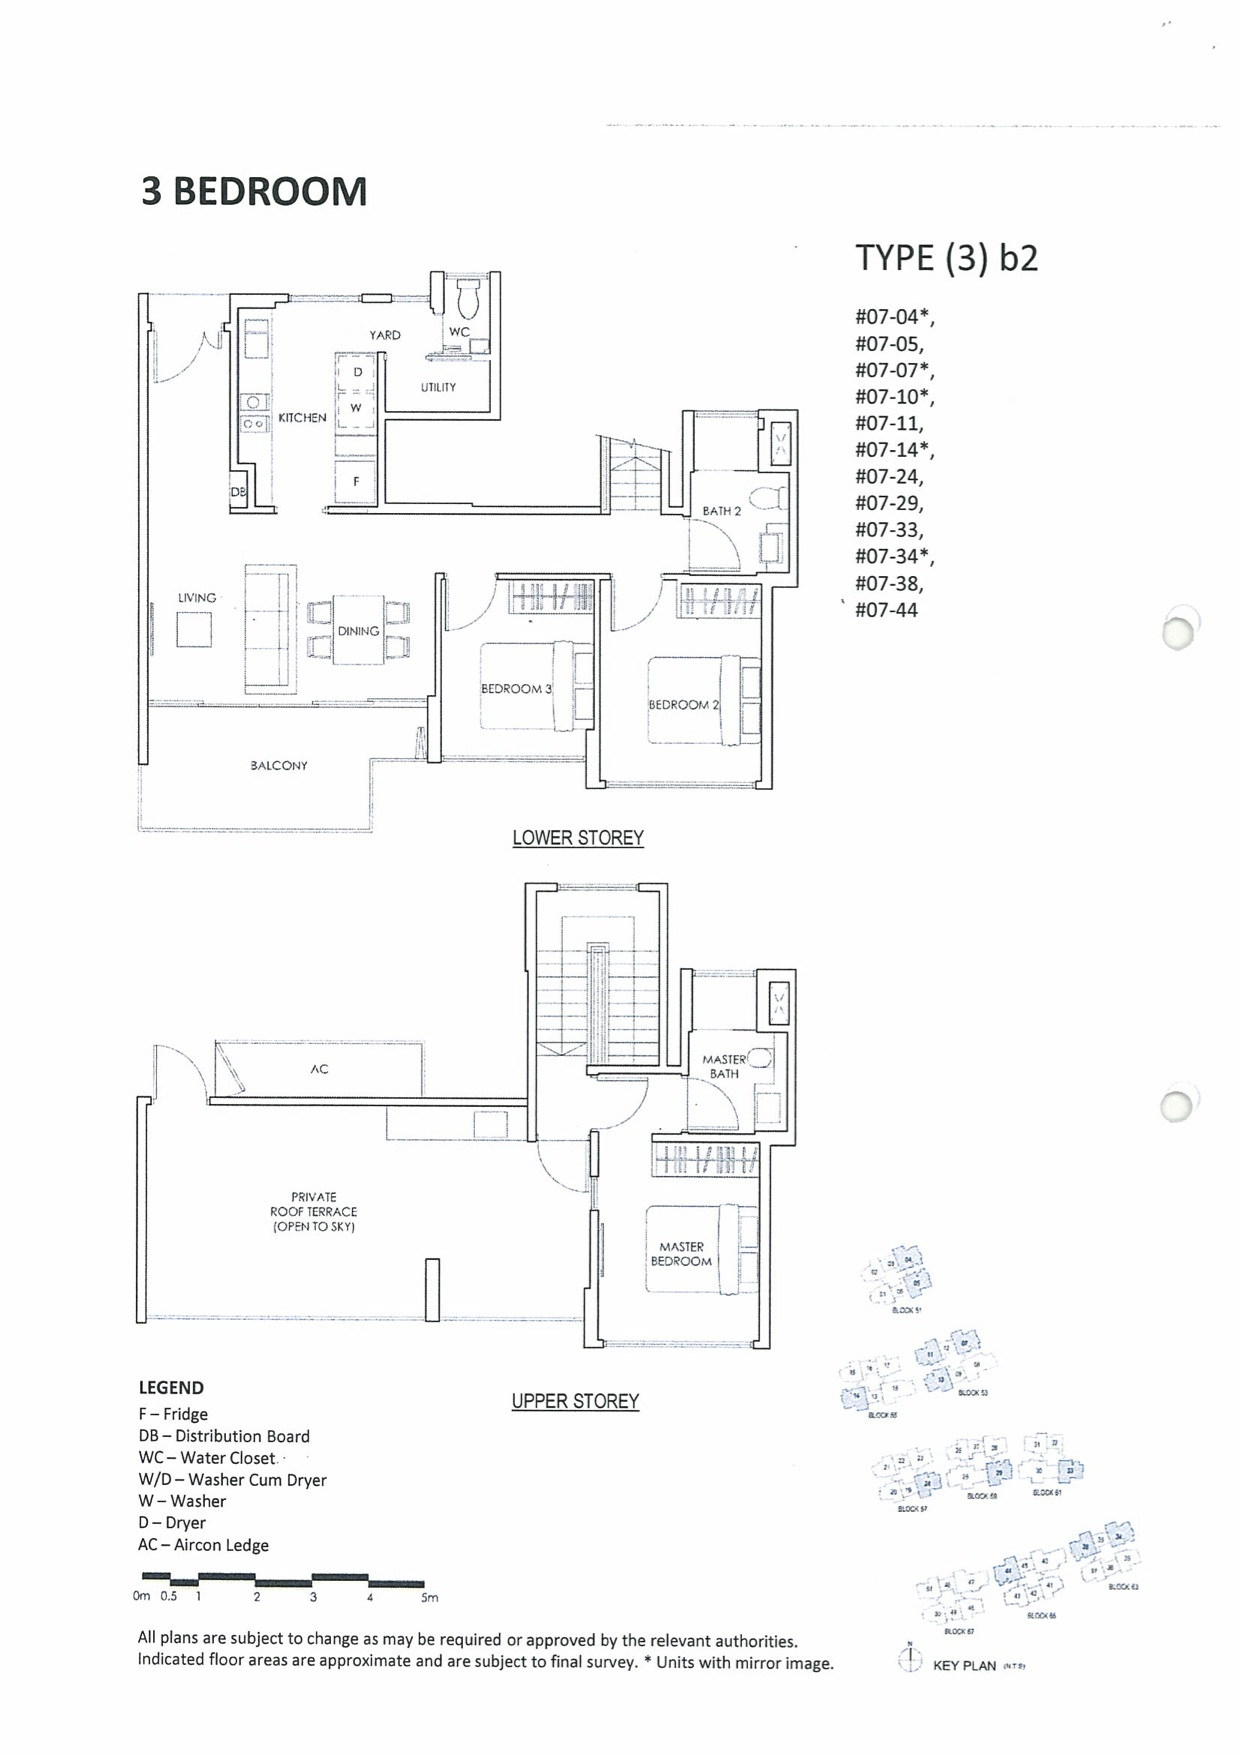 Inflora @ Changi Condo Floor Plan :: 3 Bedrooms